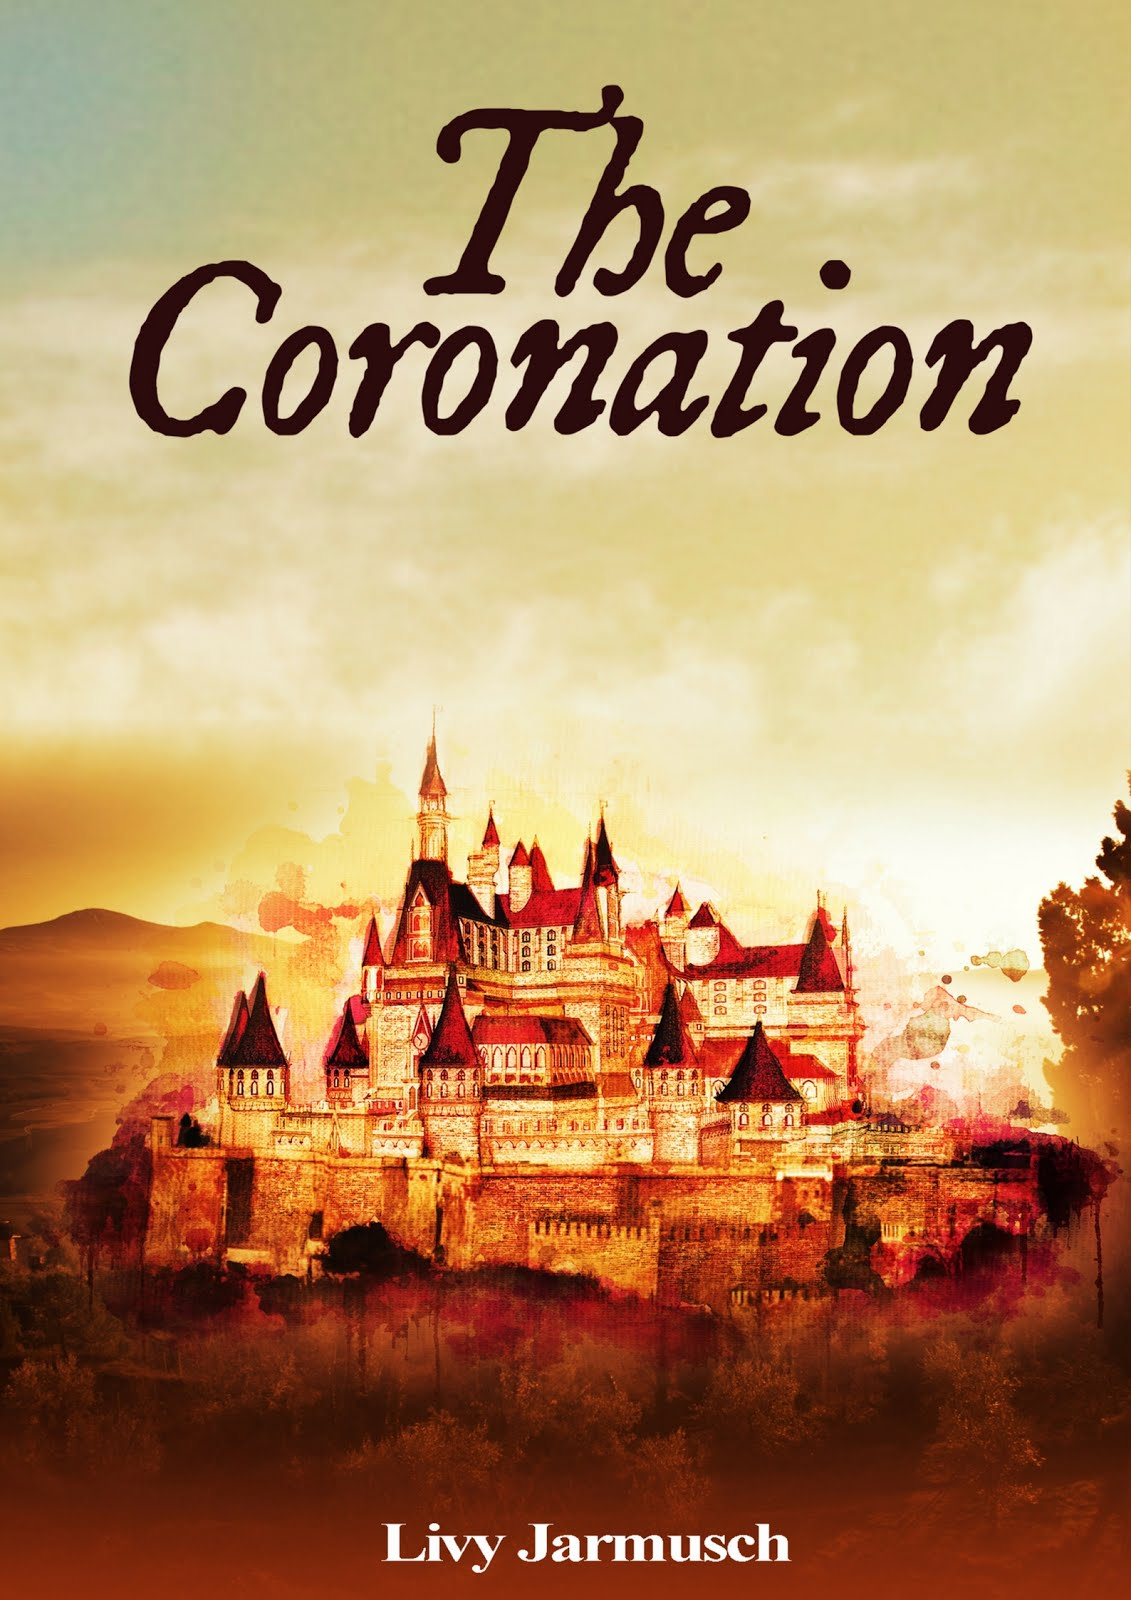 cover letter books%0A My friend Livy Jarmusch is releasing her new book  The Coronation  in just  three days  Together we have teamed up for an author interview